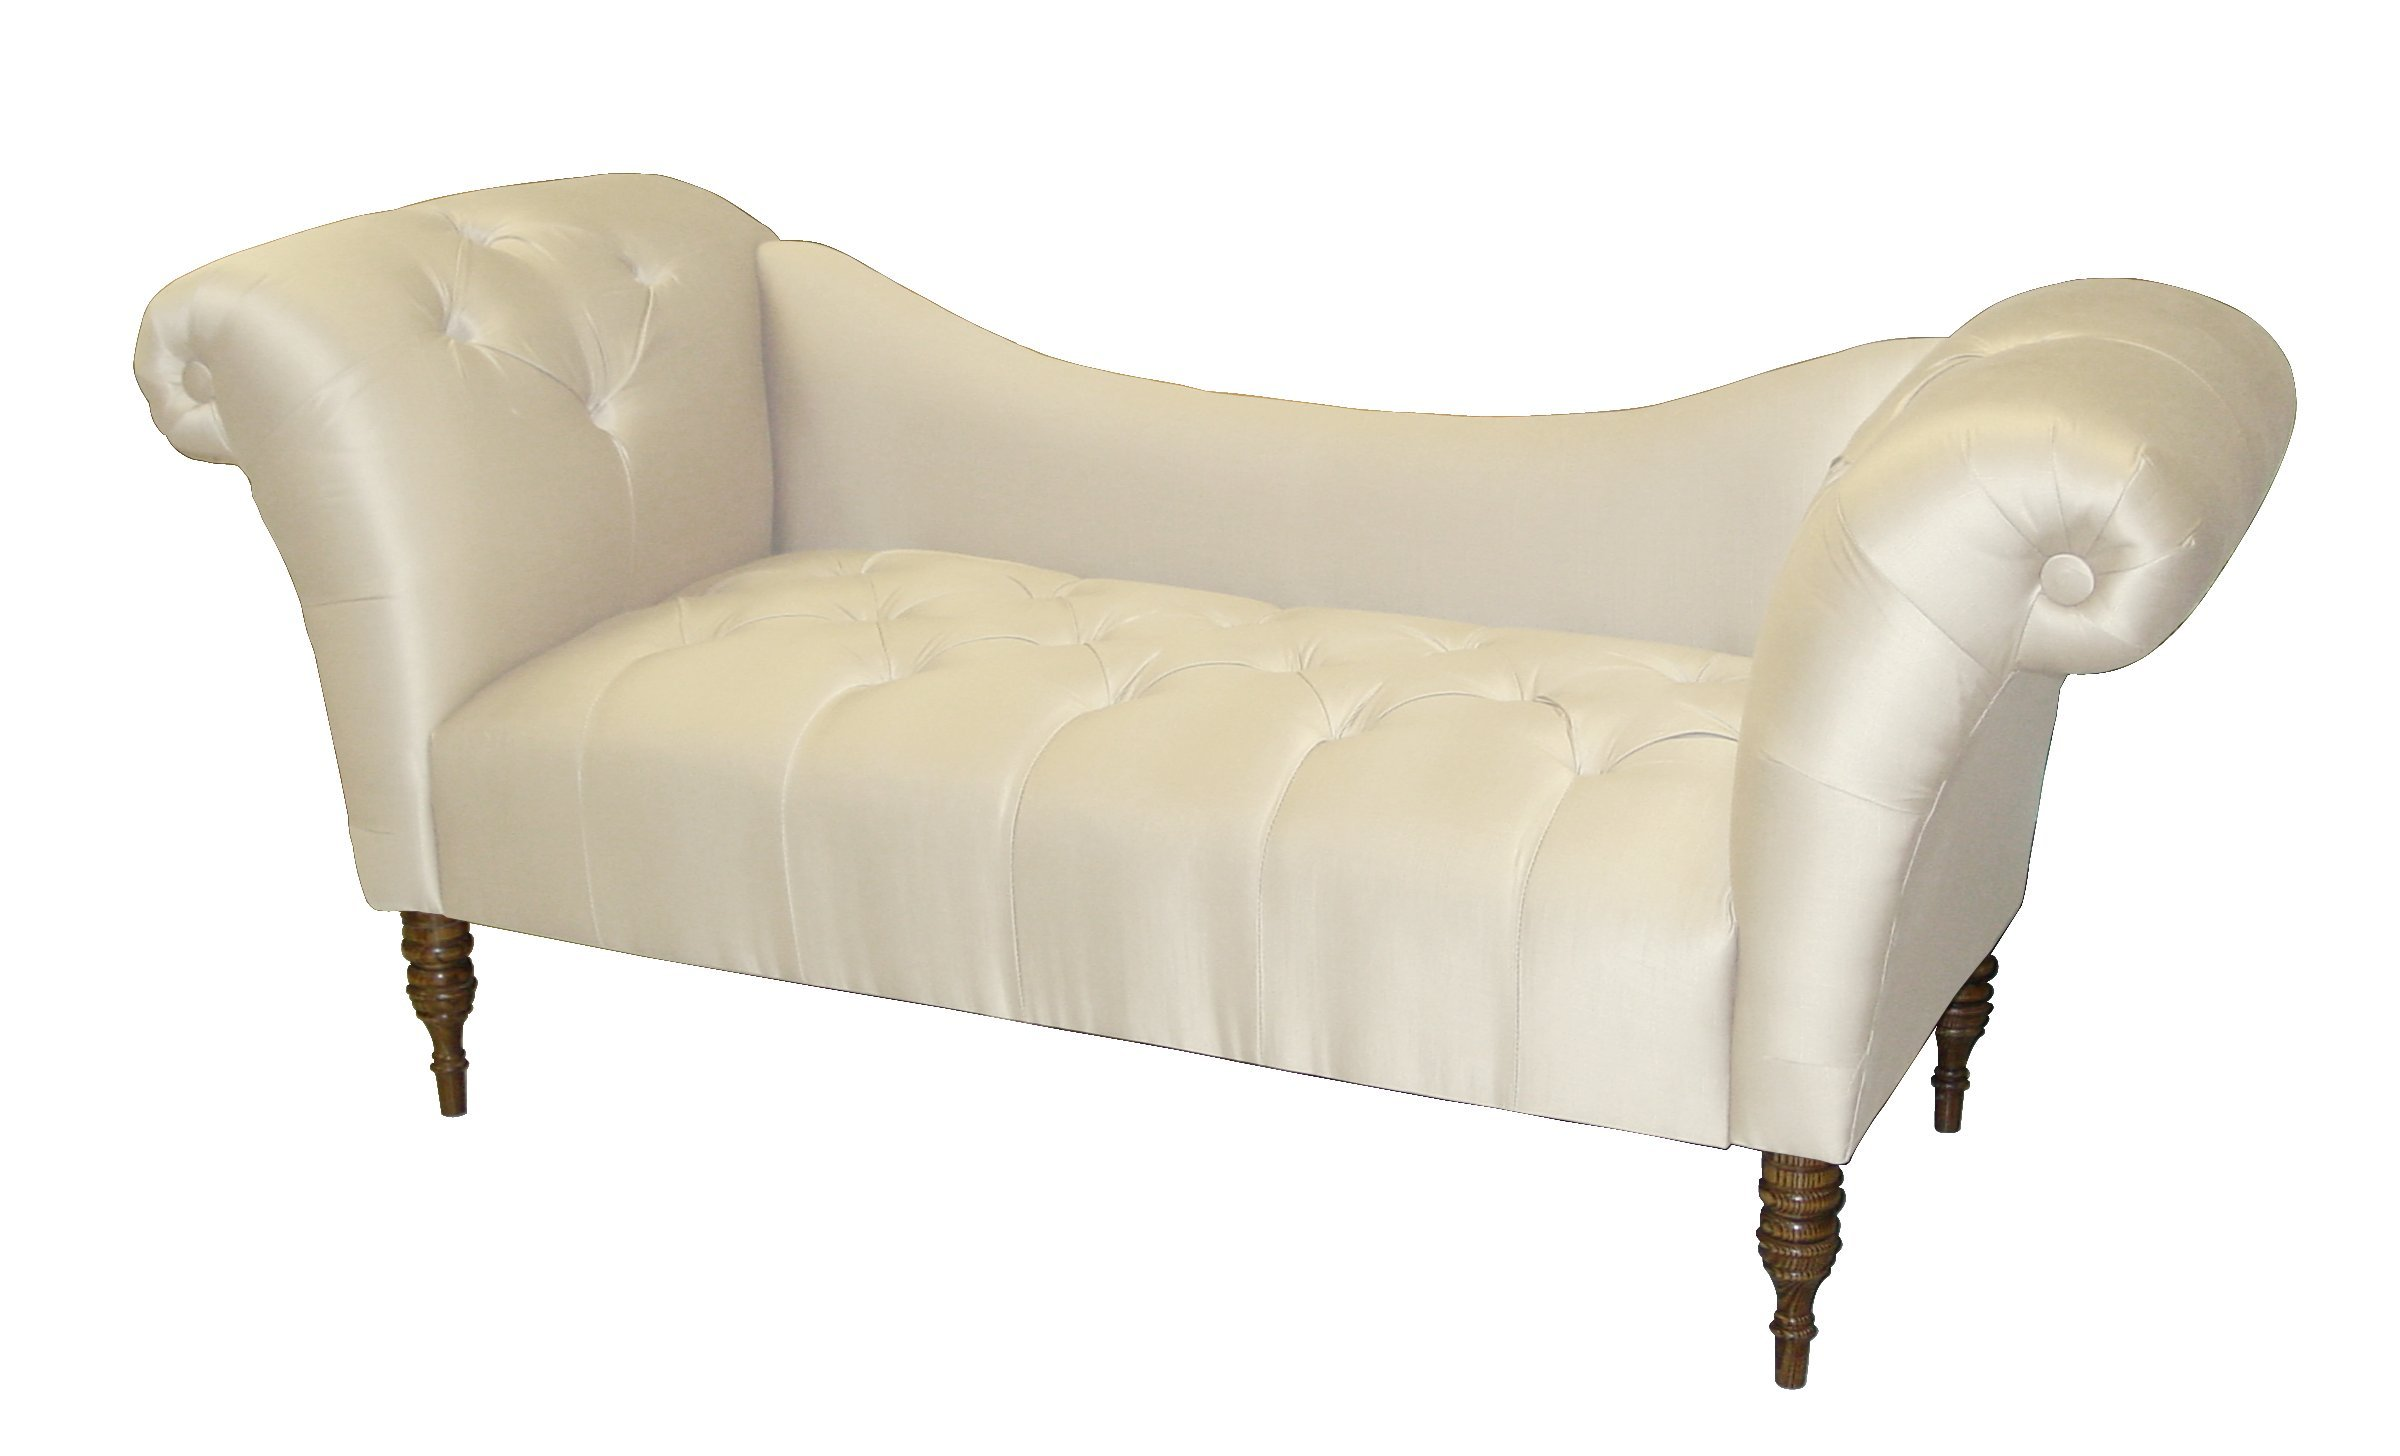 roslyn double arm tufted chaise lounge by skyline furniture in parchment shantung. Black Bedroom Furniture Sets. Home Design Ideas